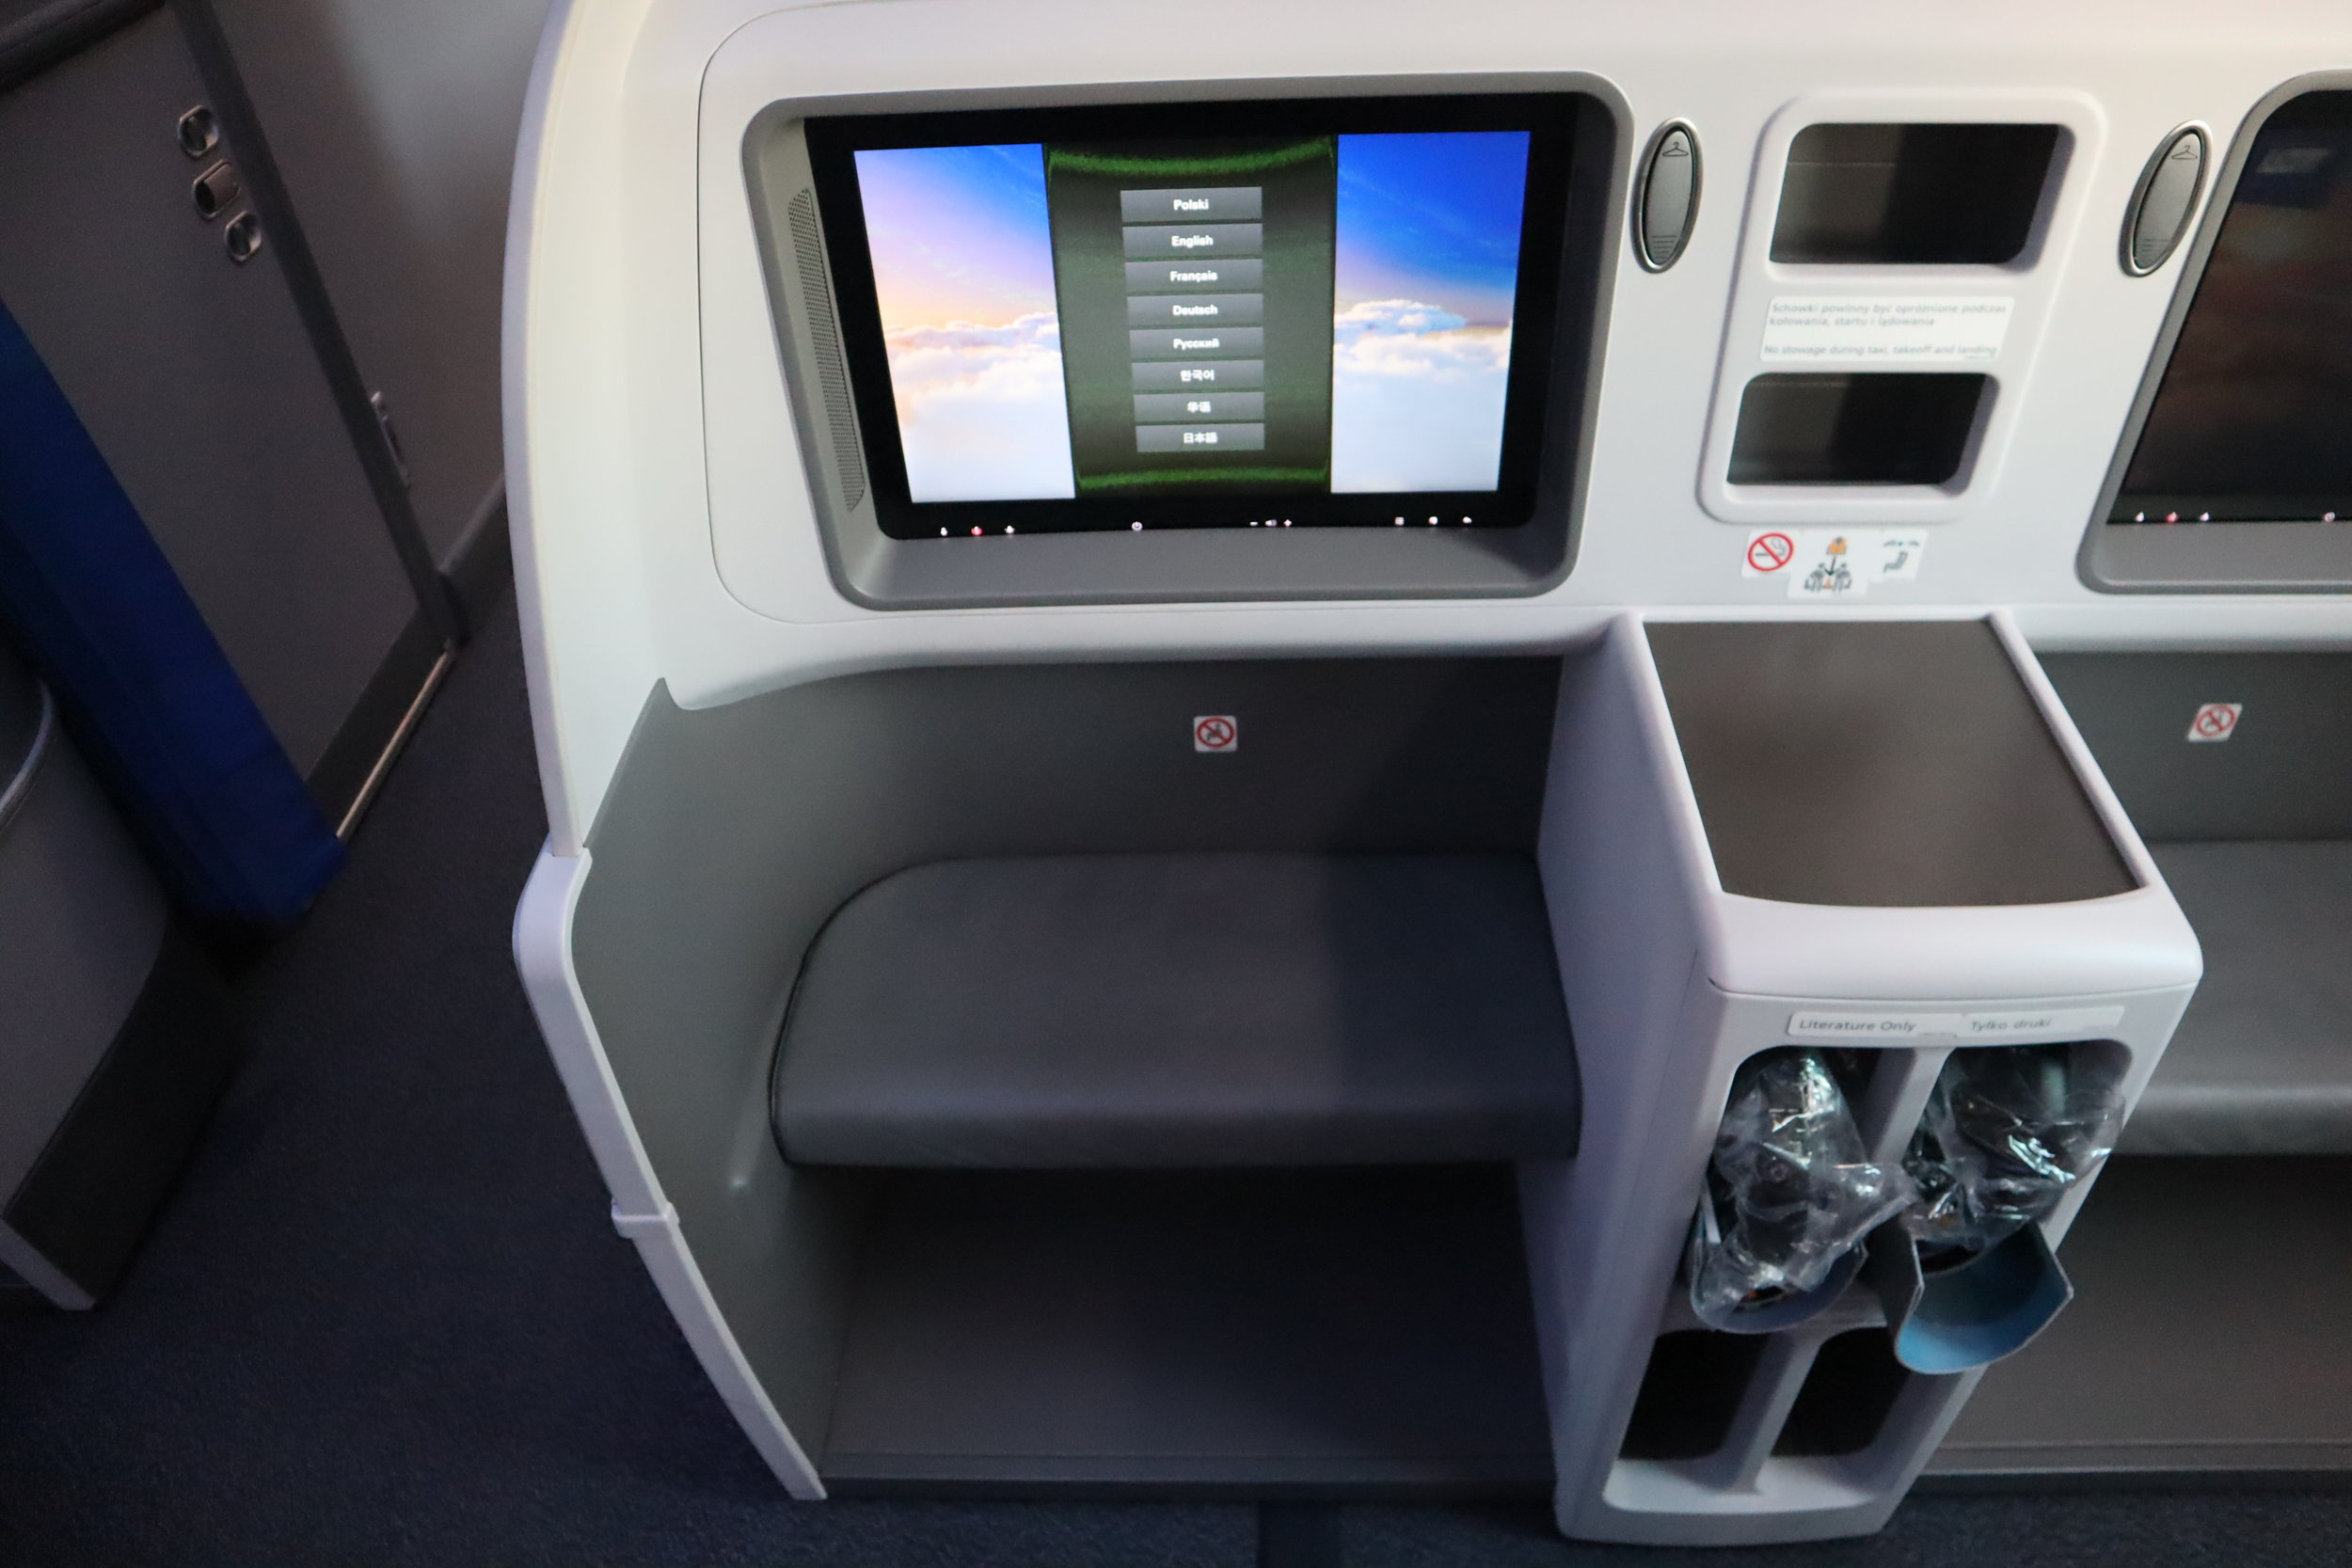 LOT Polish Airlines business class – Entertainment monitor